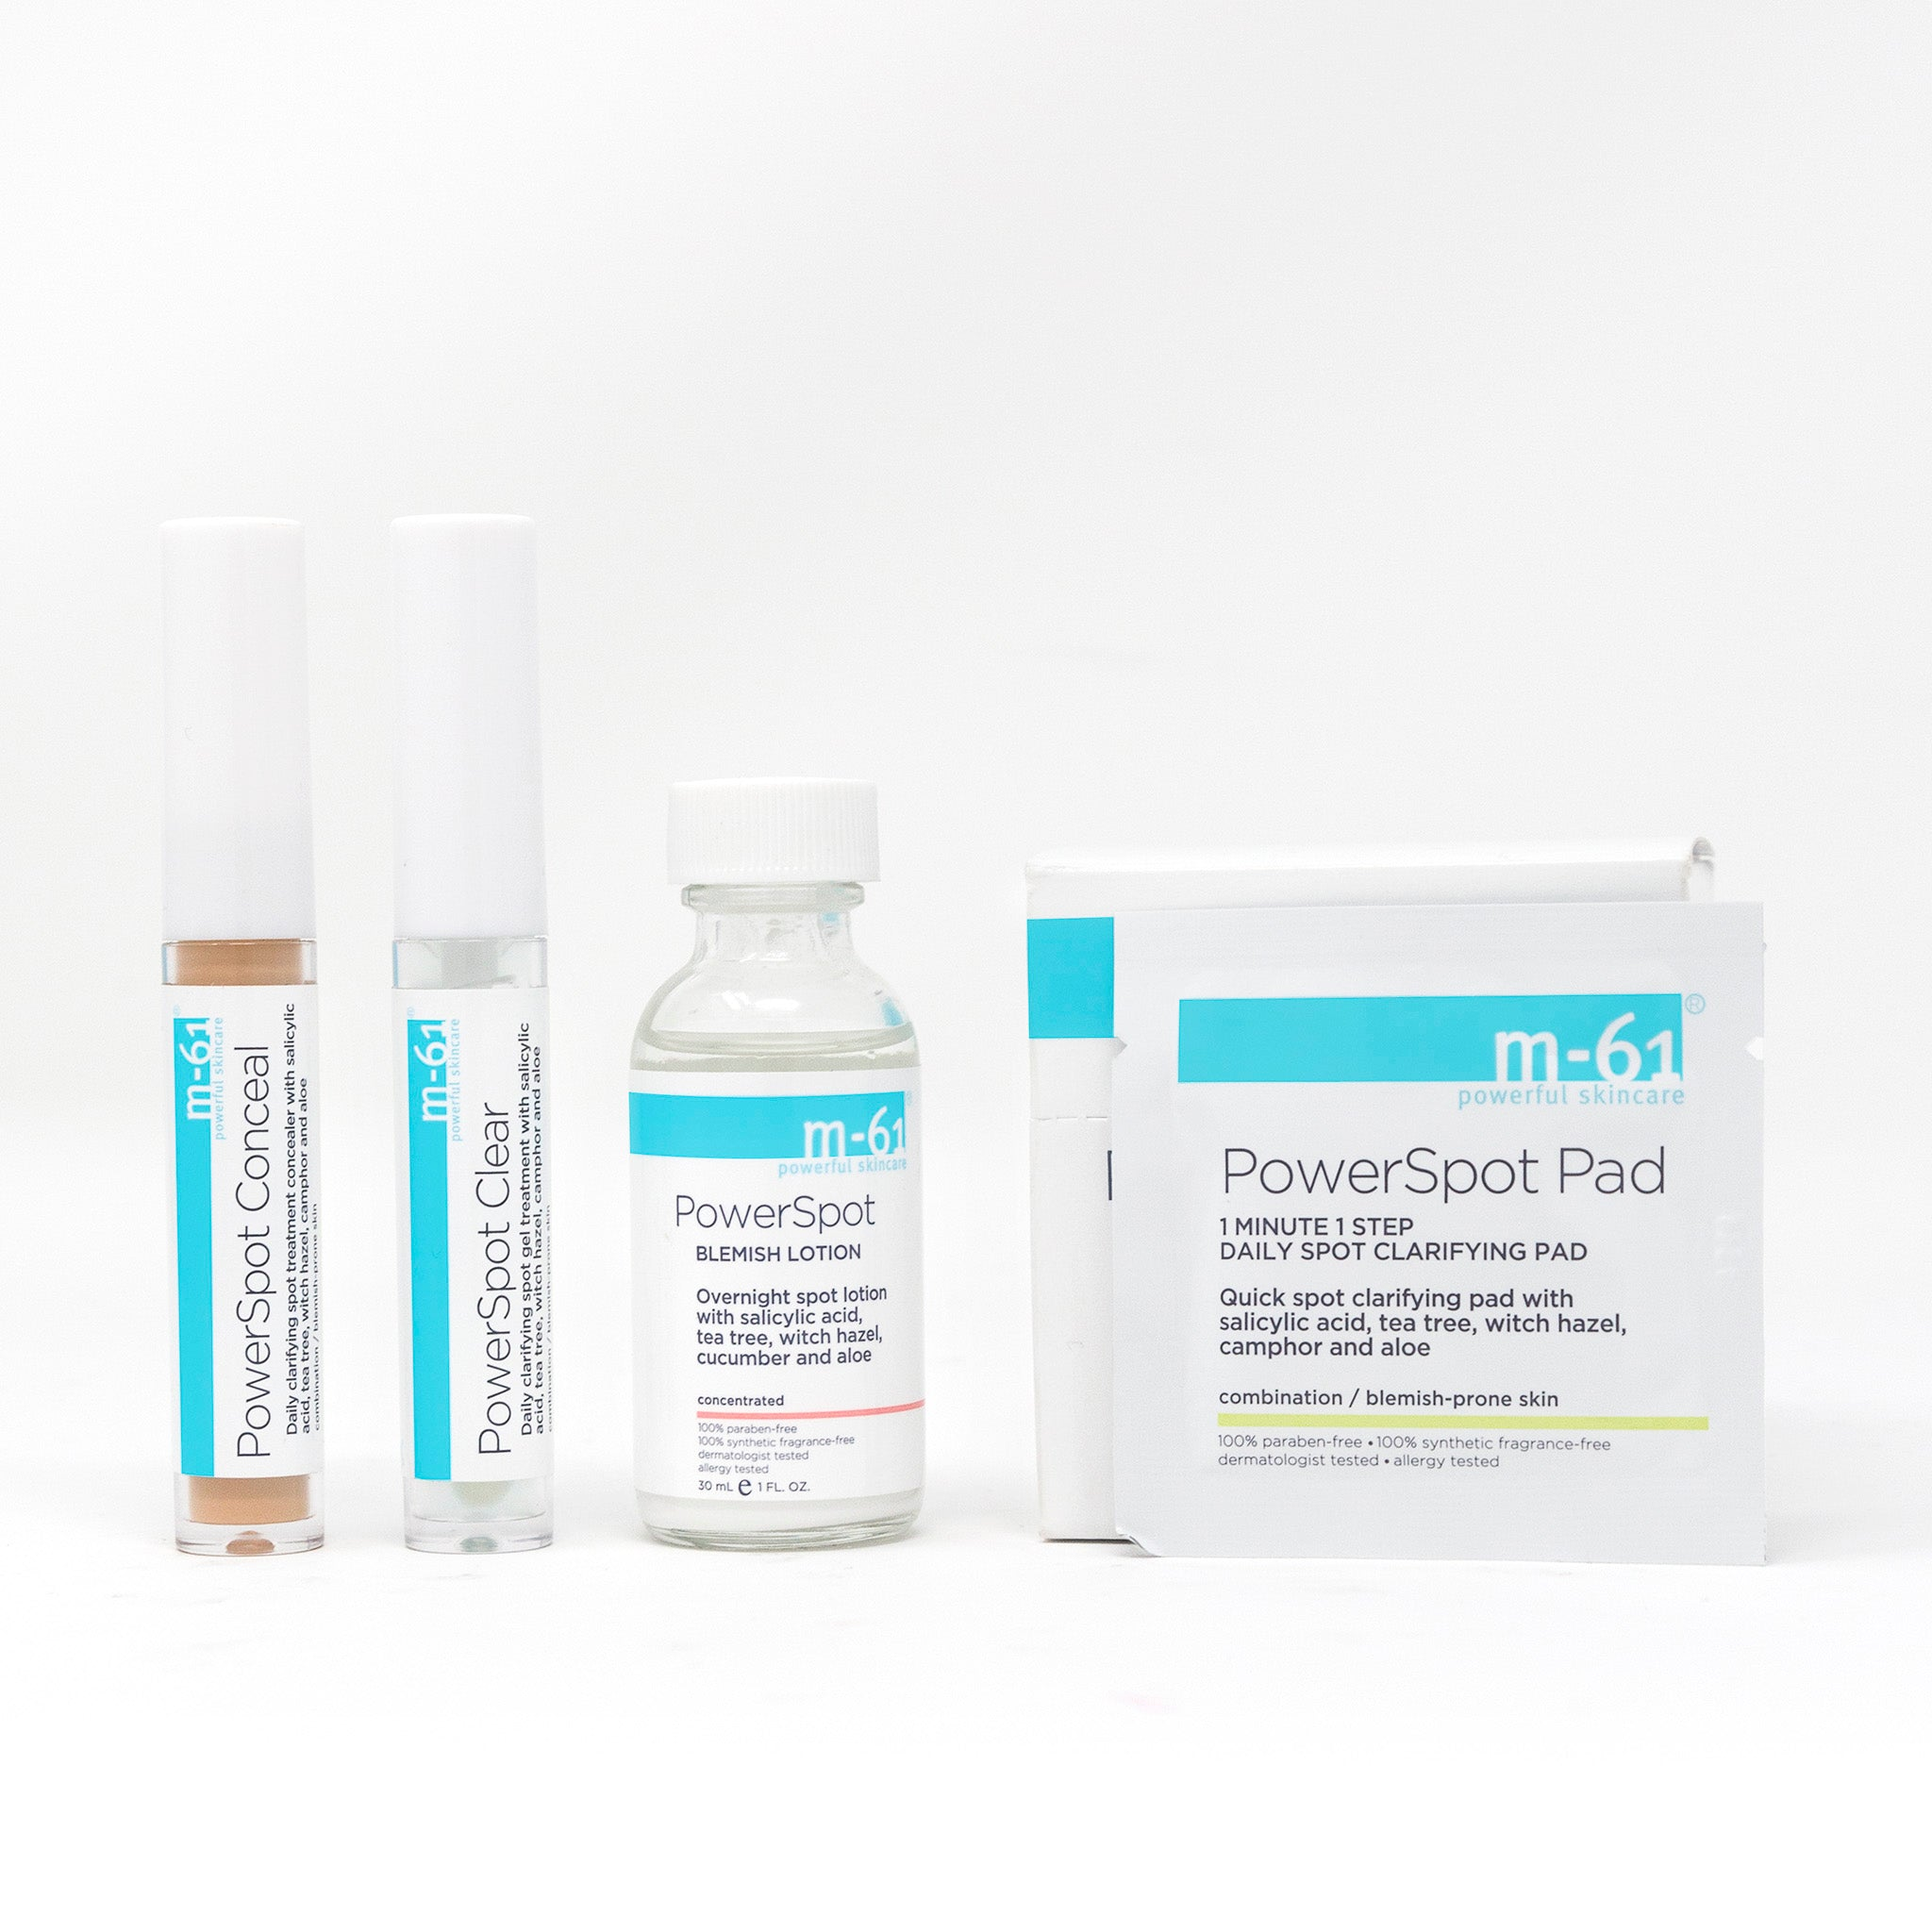 The PowerSpot Collection